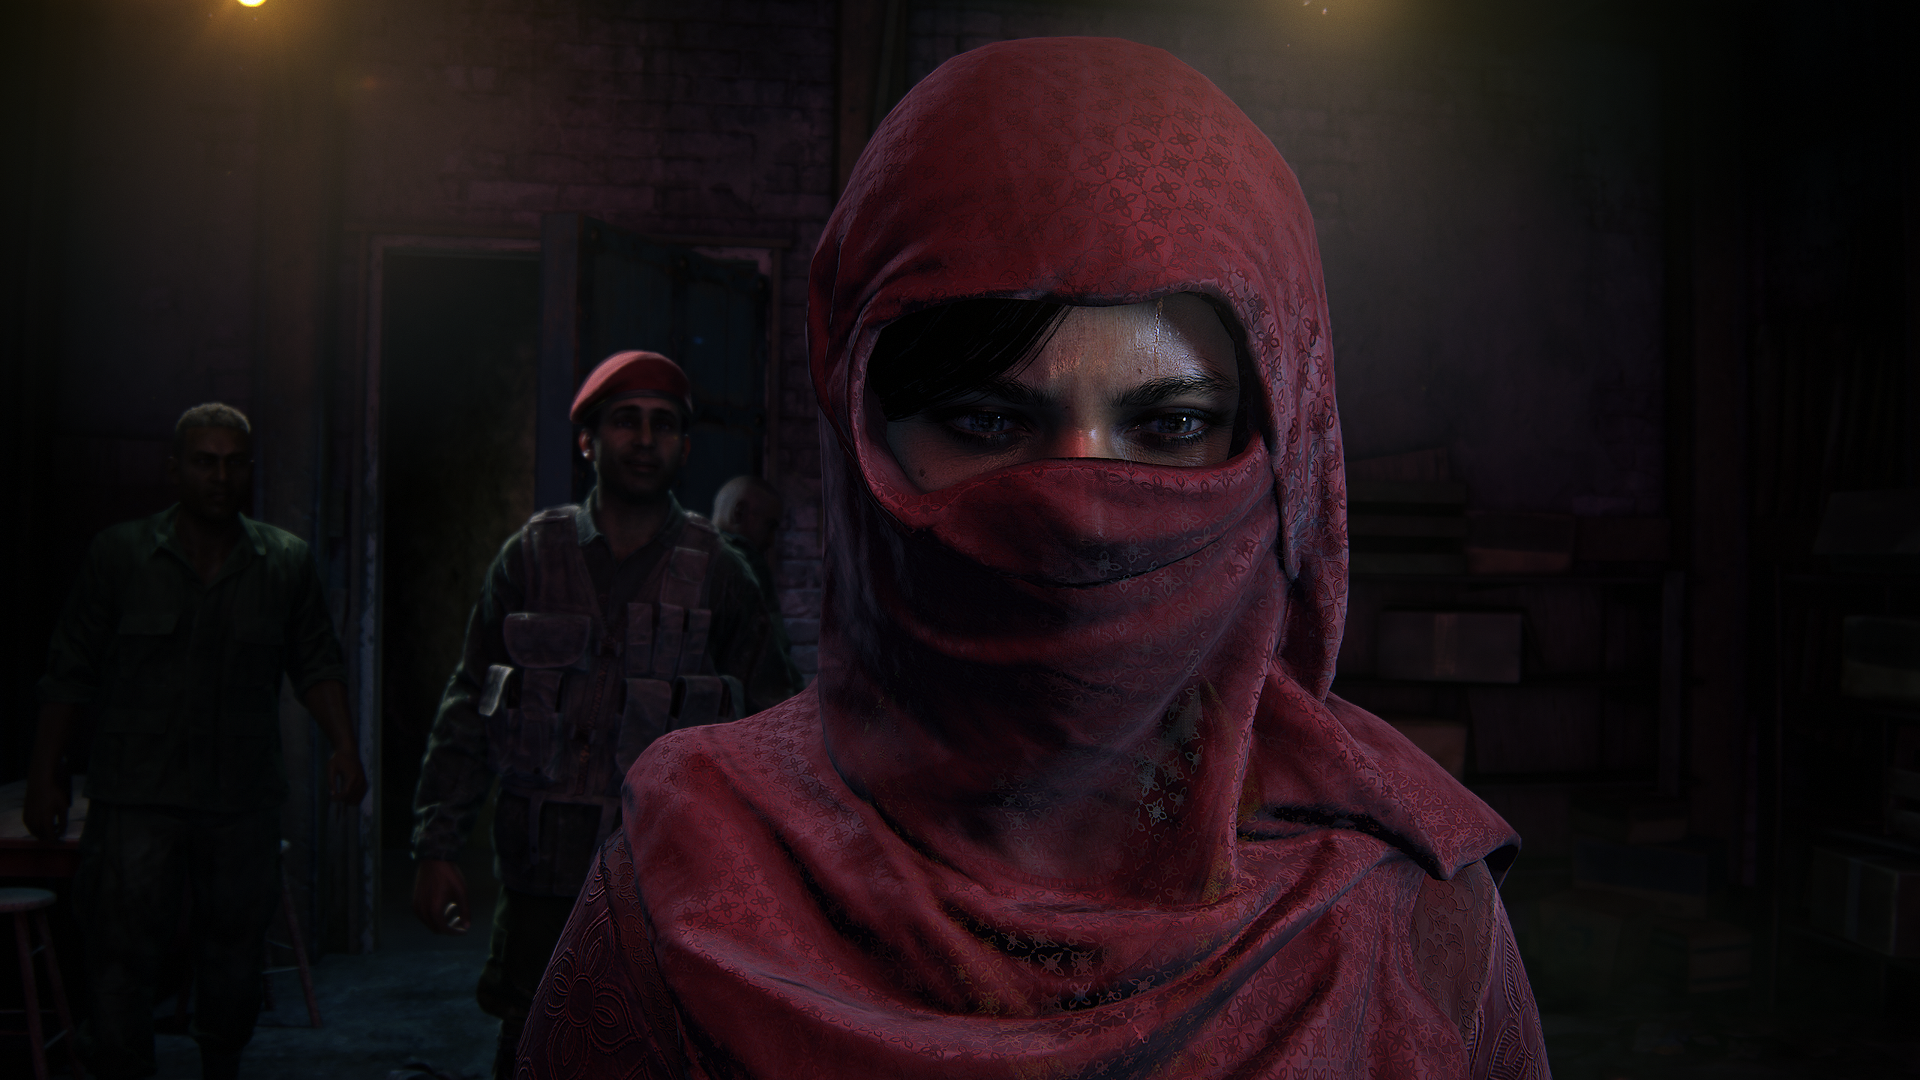 Uncharted: The Lost Legacy has some new footage to kick off Sony's E3 screenshot